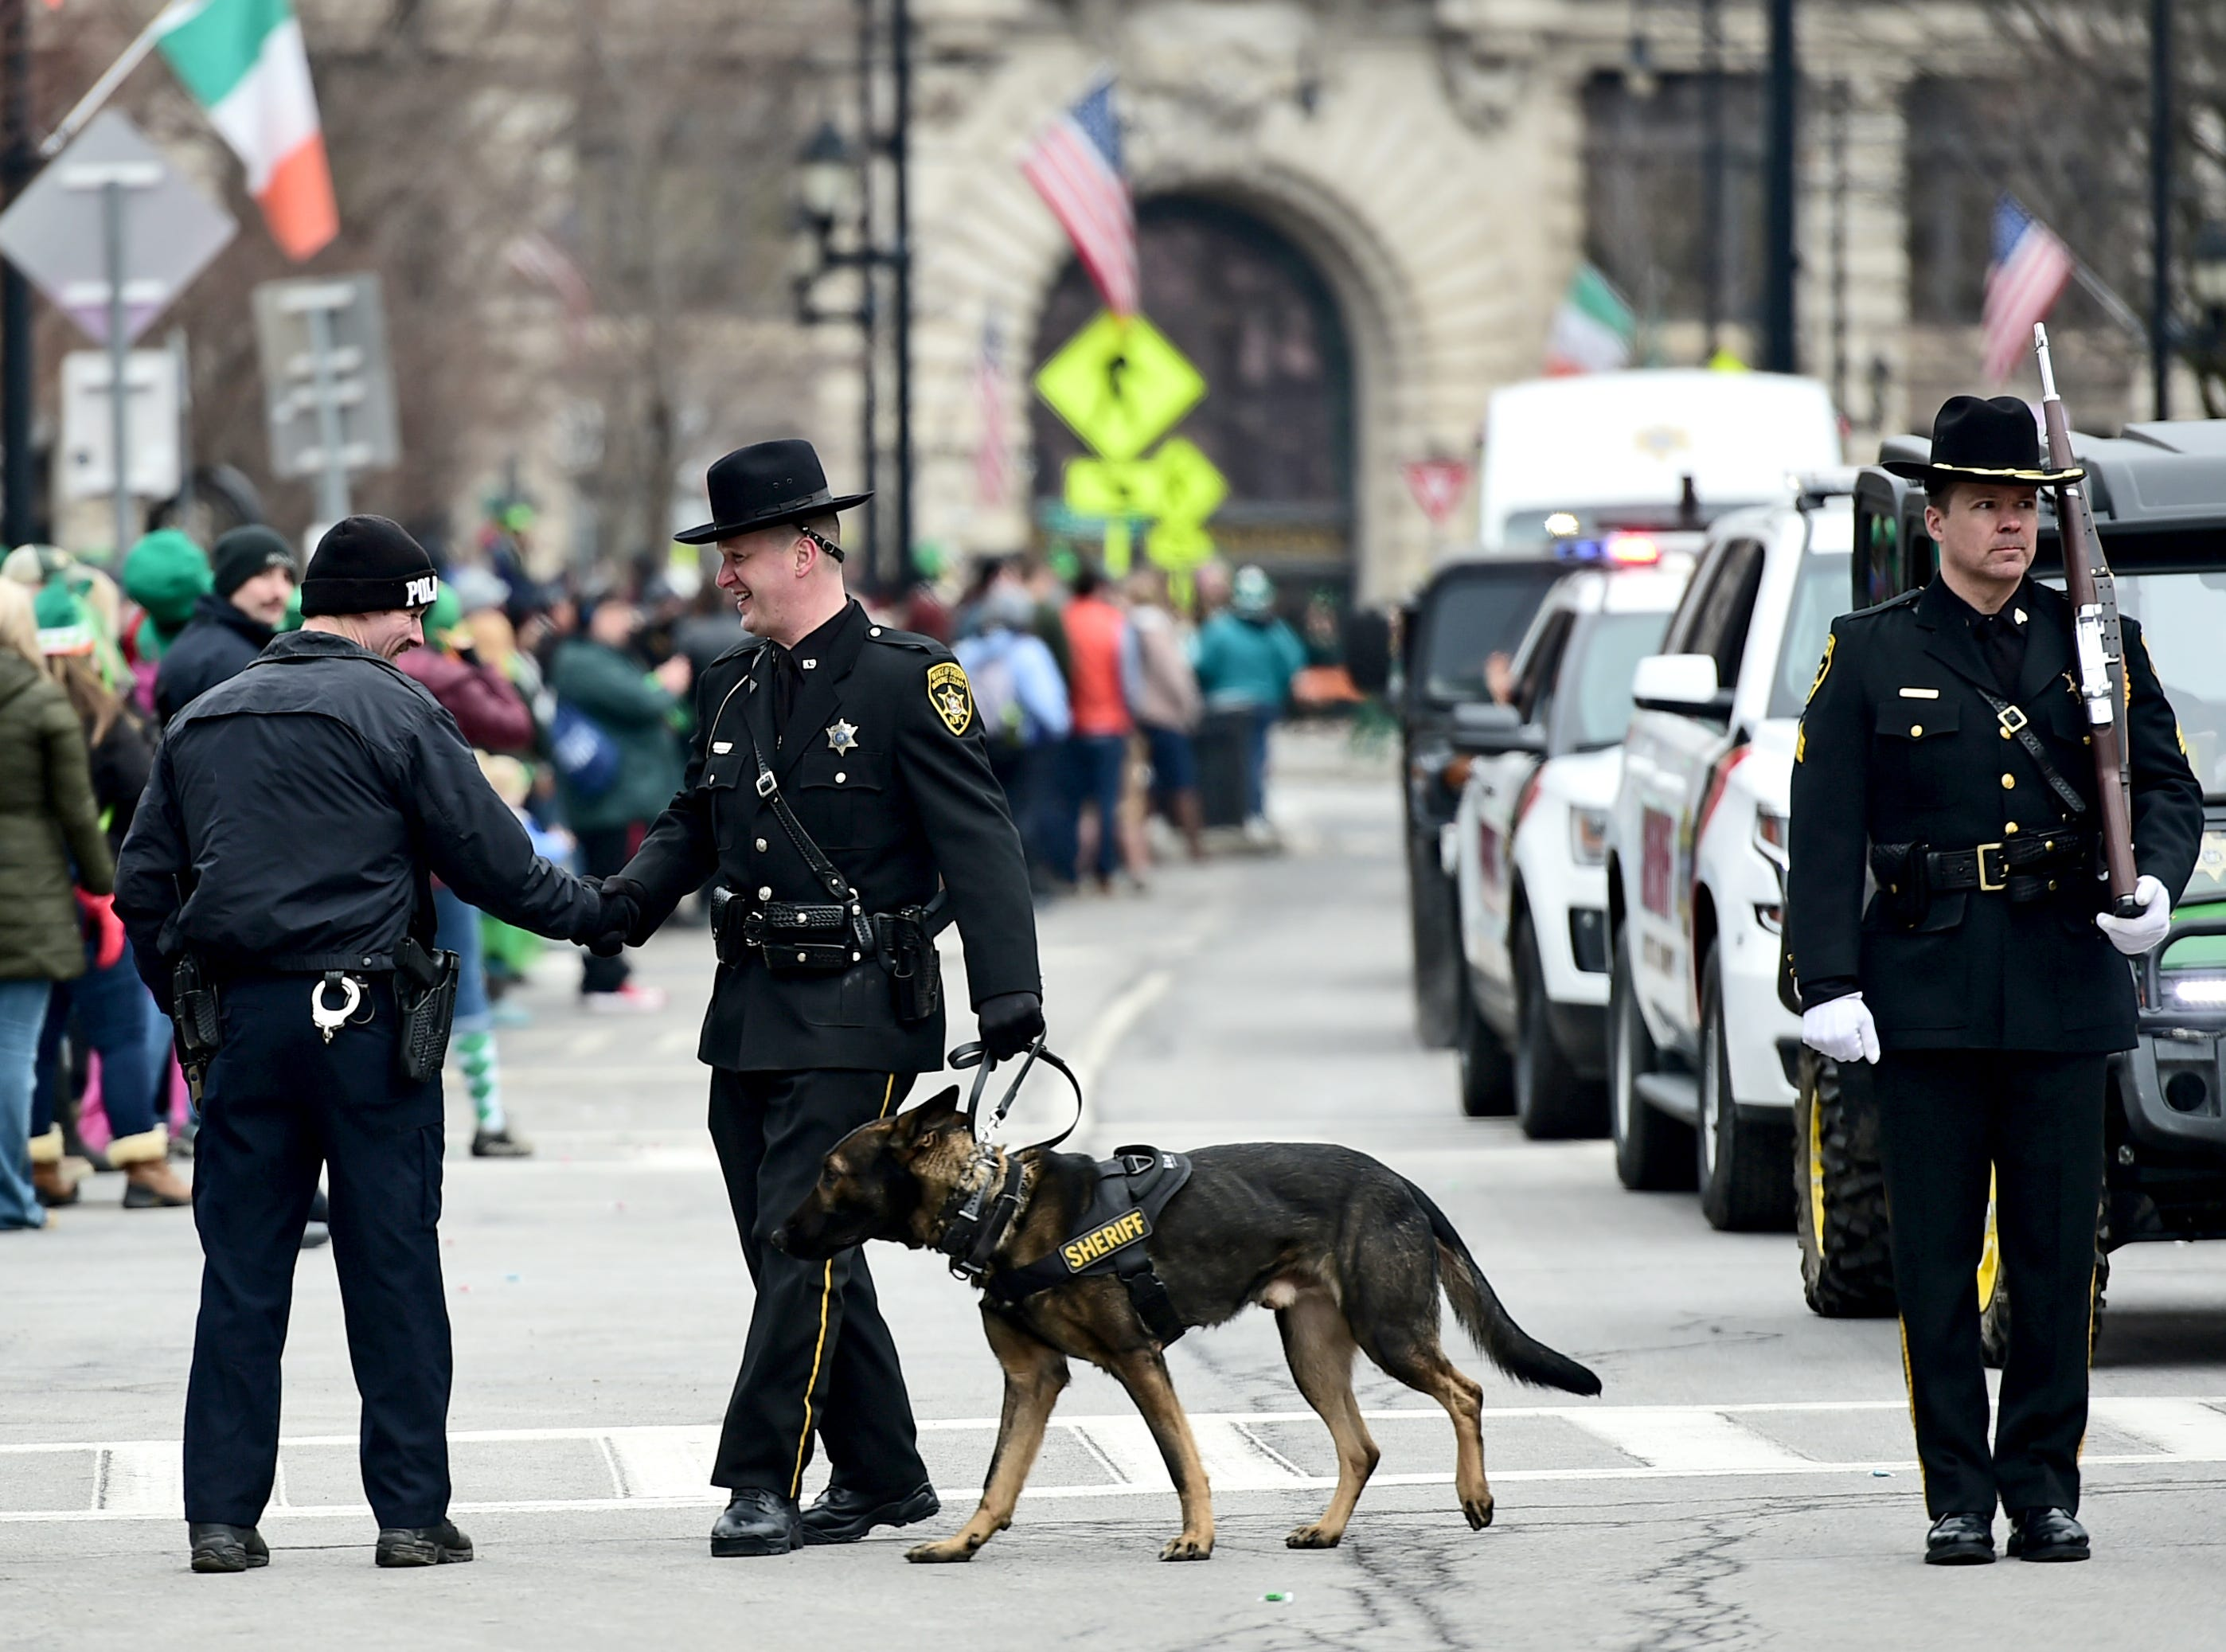 A member of the Broome County Sheriff's Department shakes hands with a Binghamton Police Officer along the parade rout during the annual St. Patrick's Day Parade in downtown Binghamton. March 2, 2019.